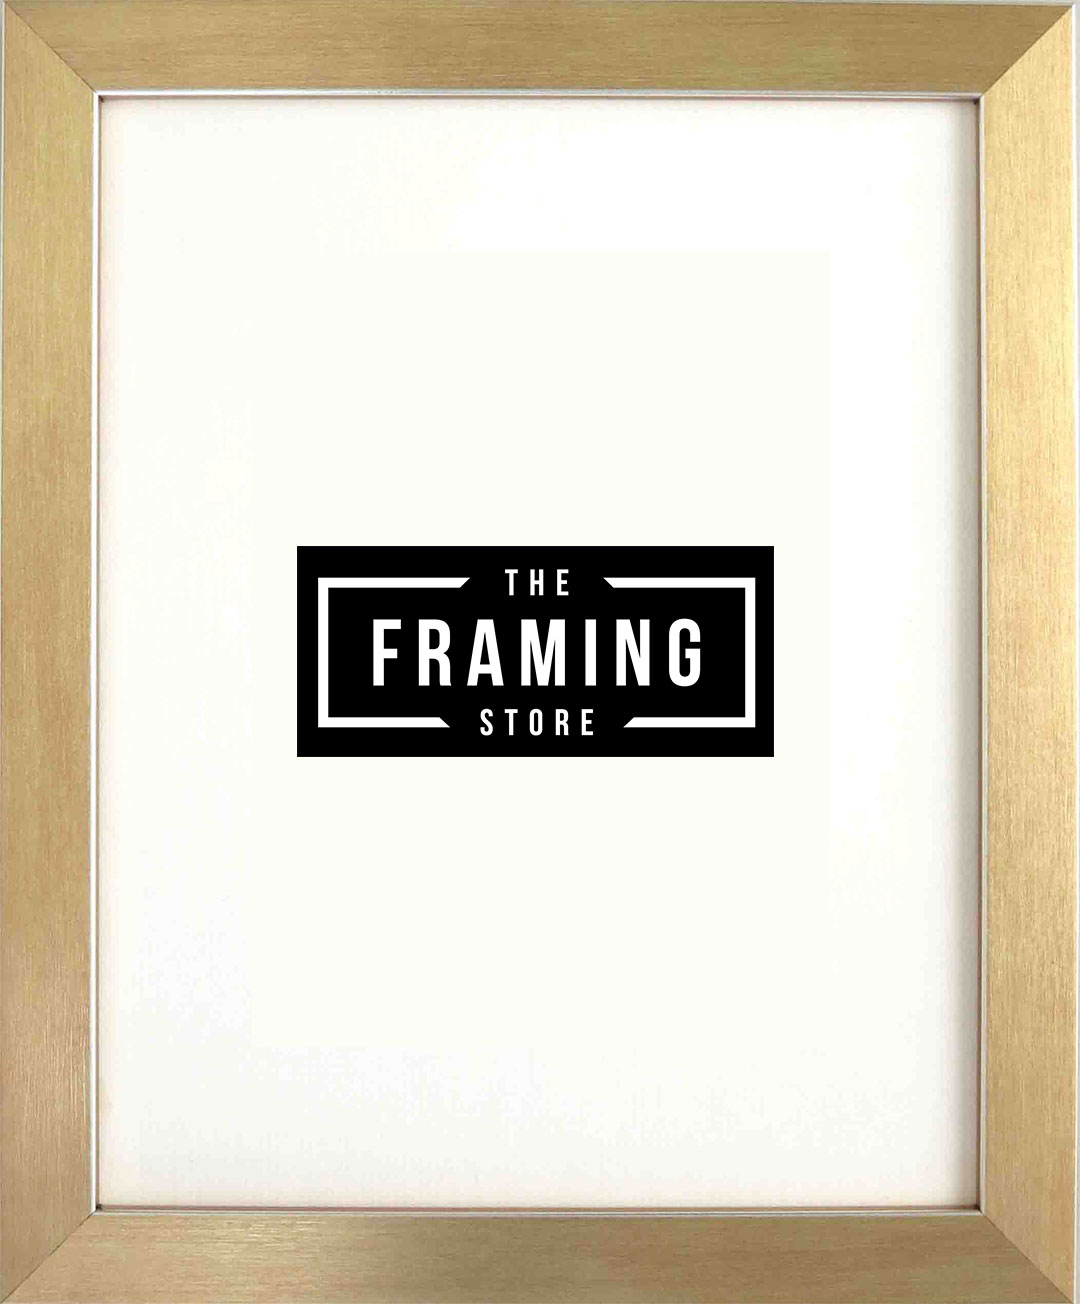 Australian made 8x10 Bronze coloured frame (203mm x 254mm)